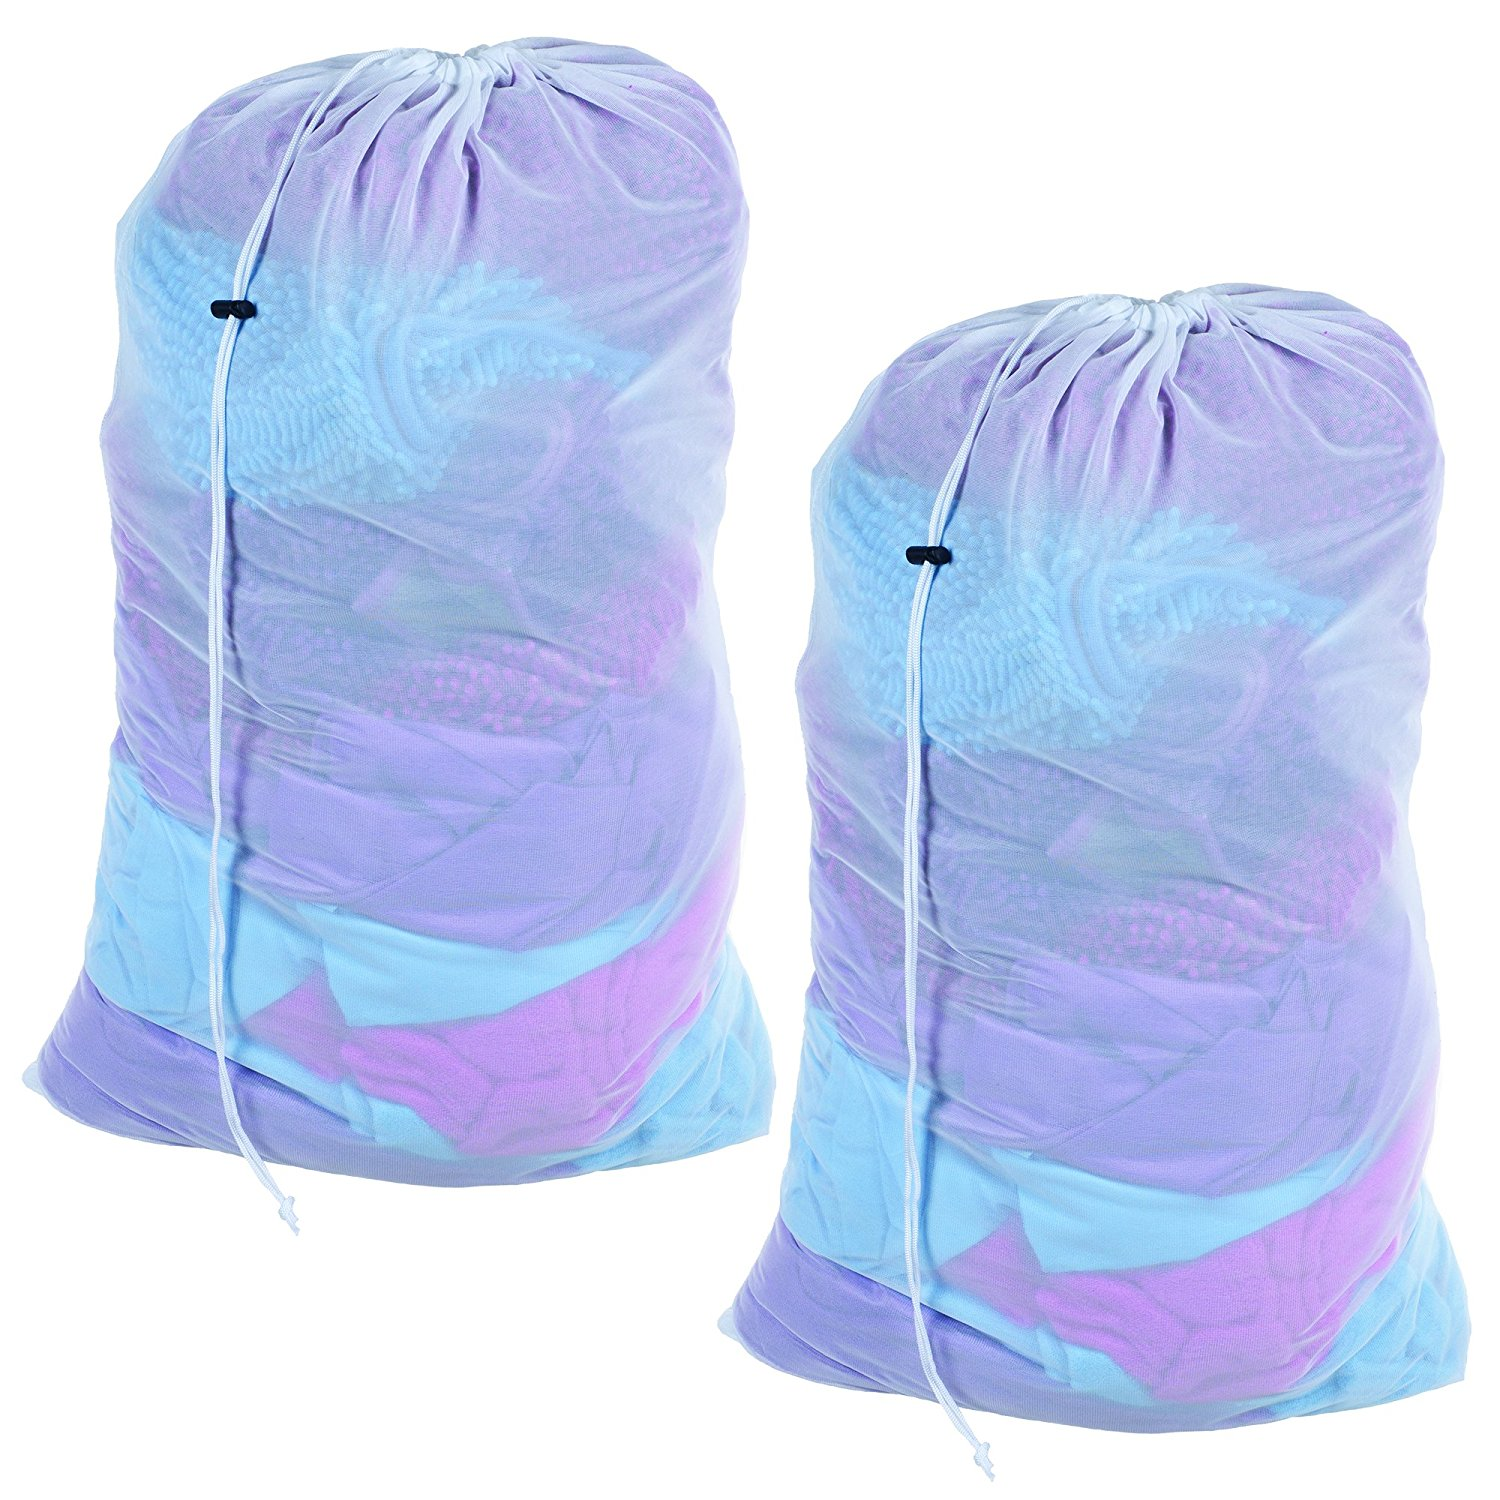 Mesh Laundry Bags- Set of 2- Heavy Duty Mesh Drawstring Breathable Laundry Bag for College Dorms and Apartments- By By Everyday Home Ship from US